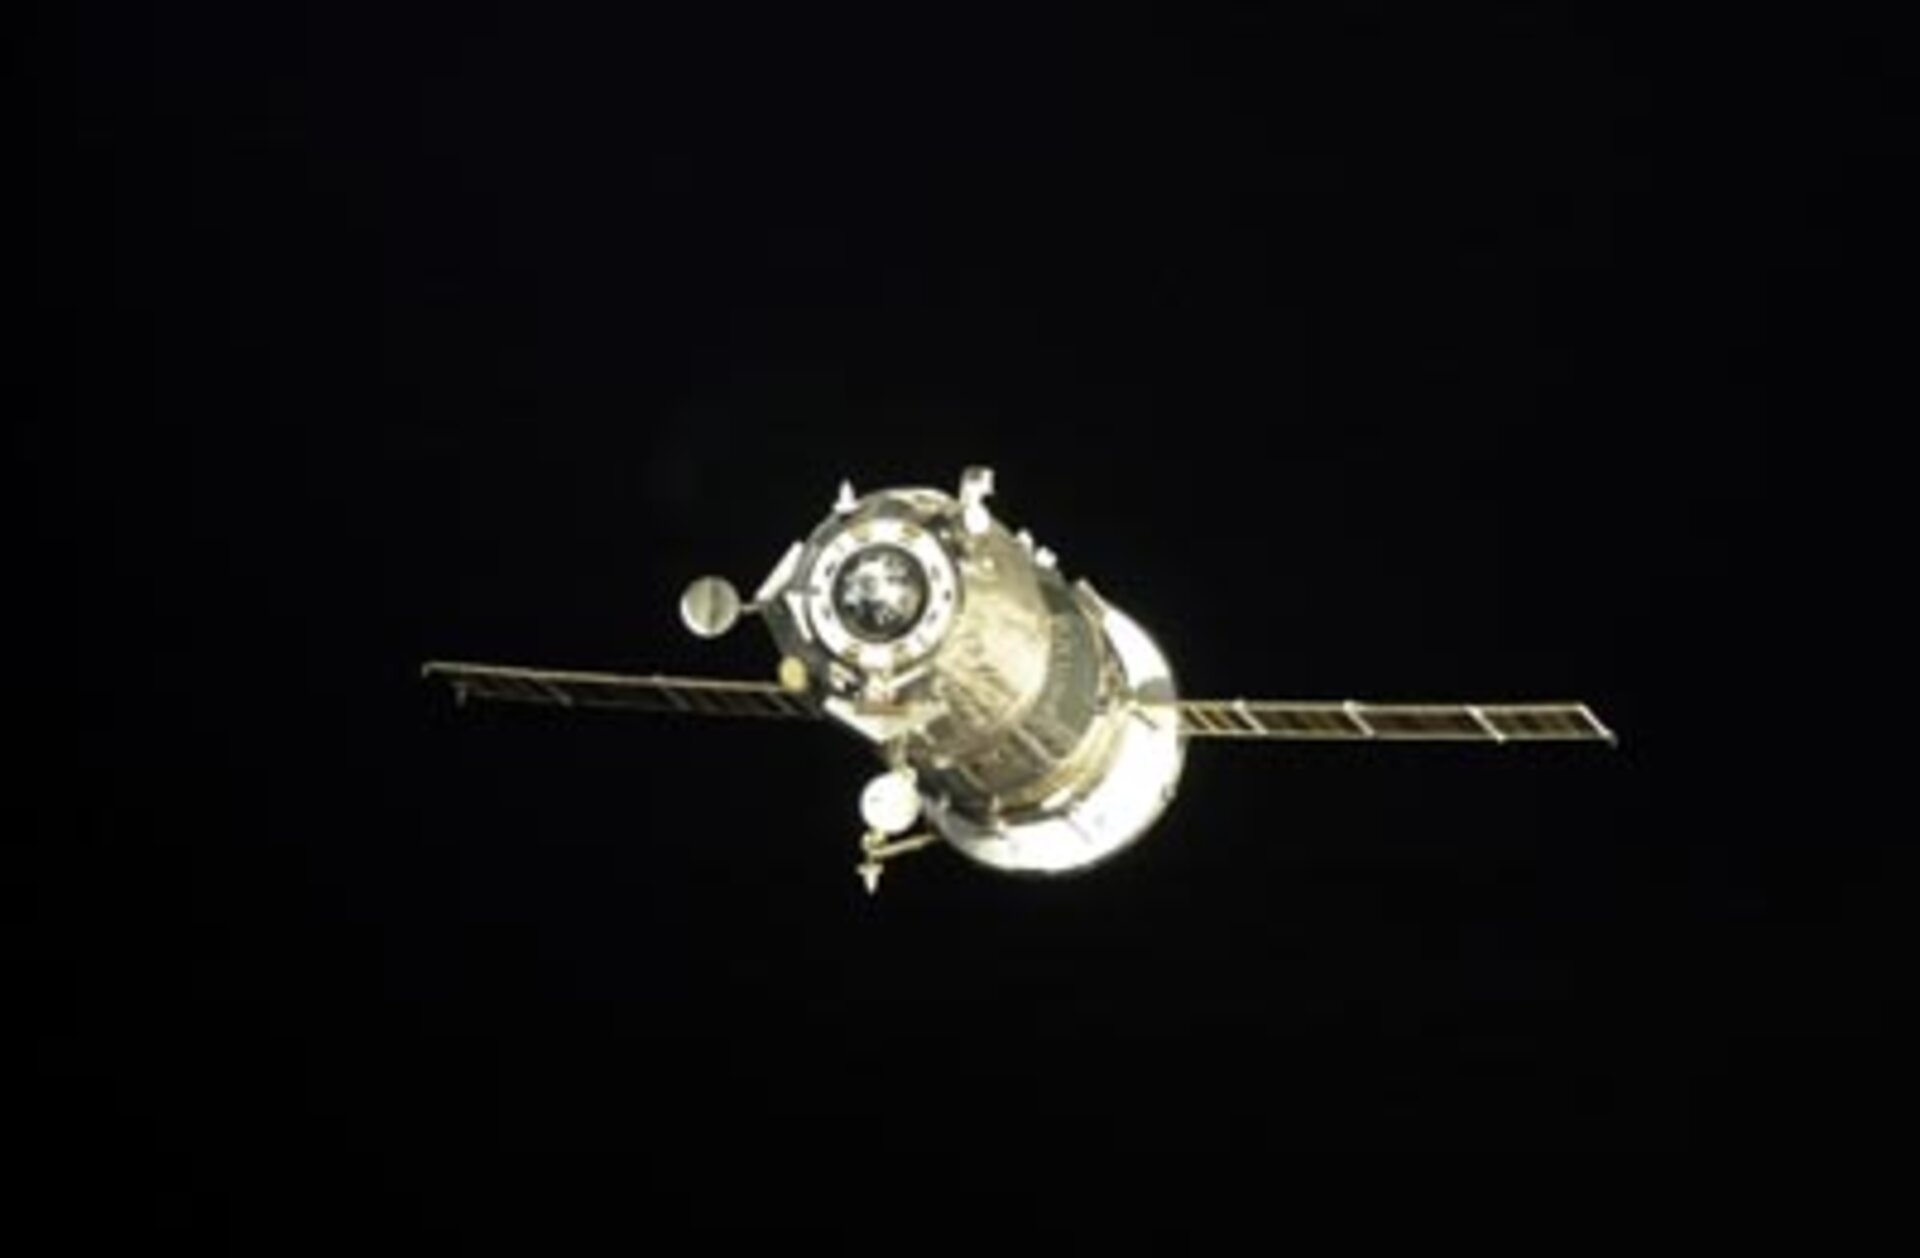 Successful docking of an unmanned Progress spacecraft with the ISS on 31 August